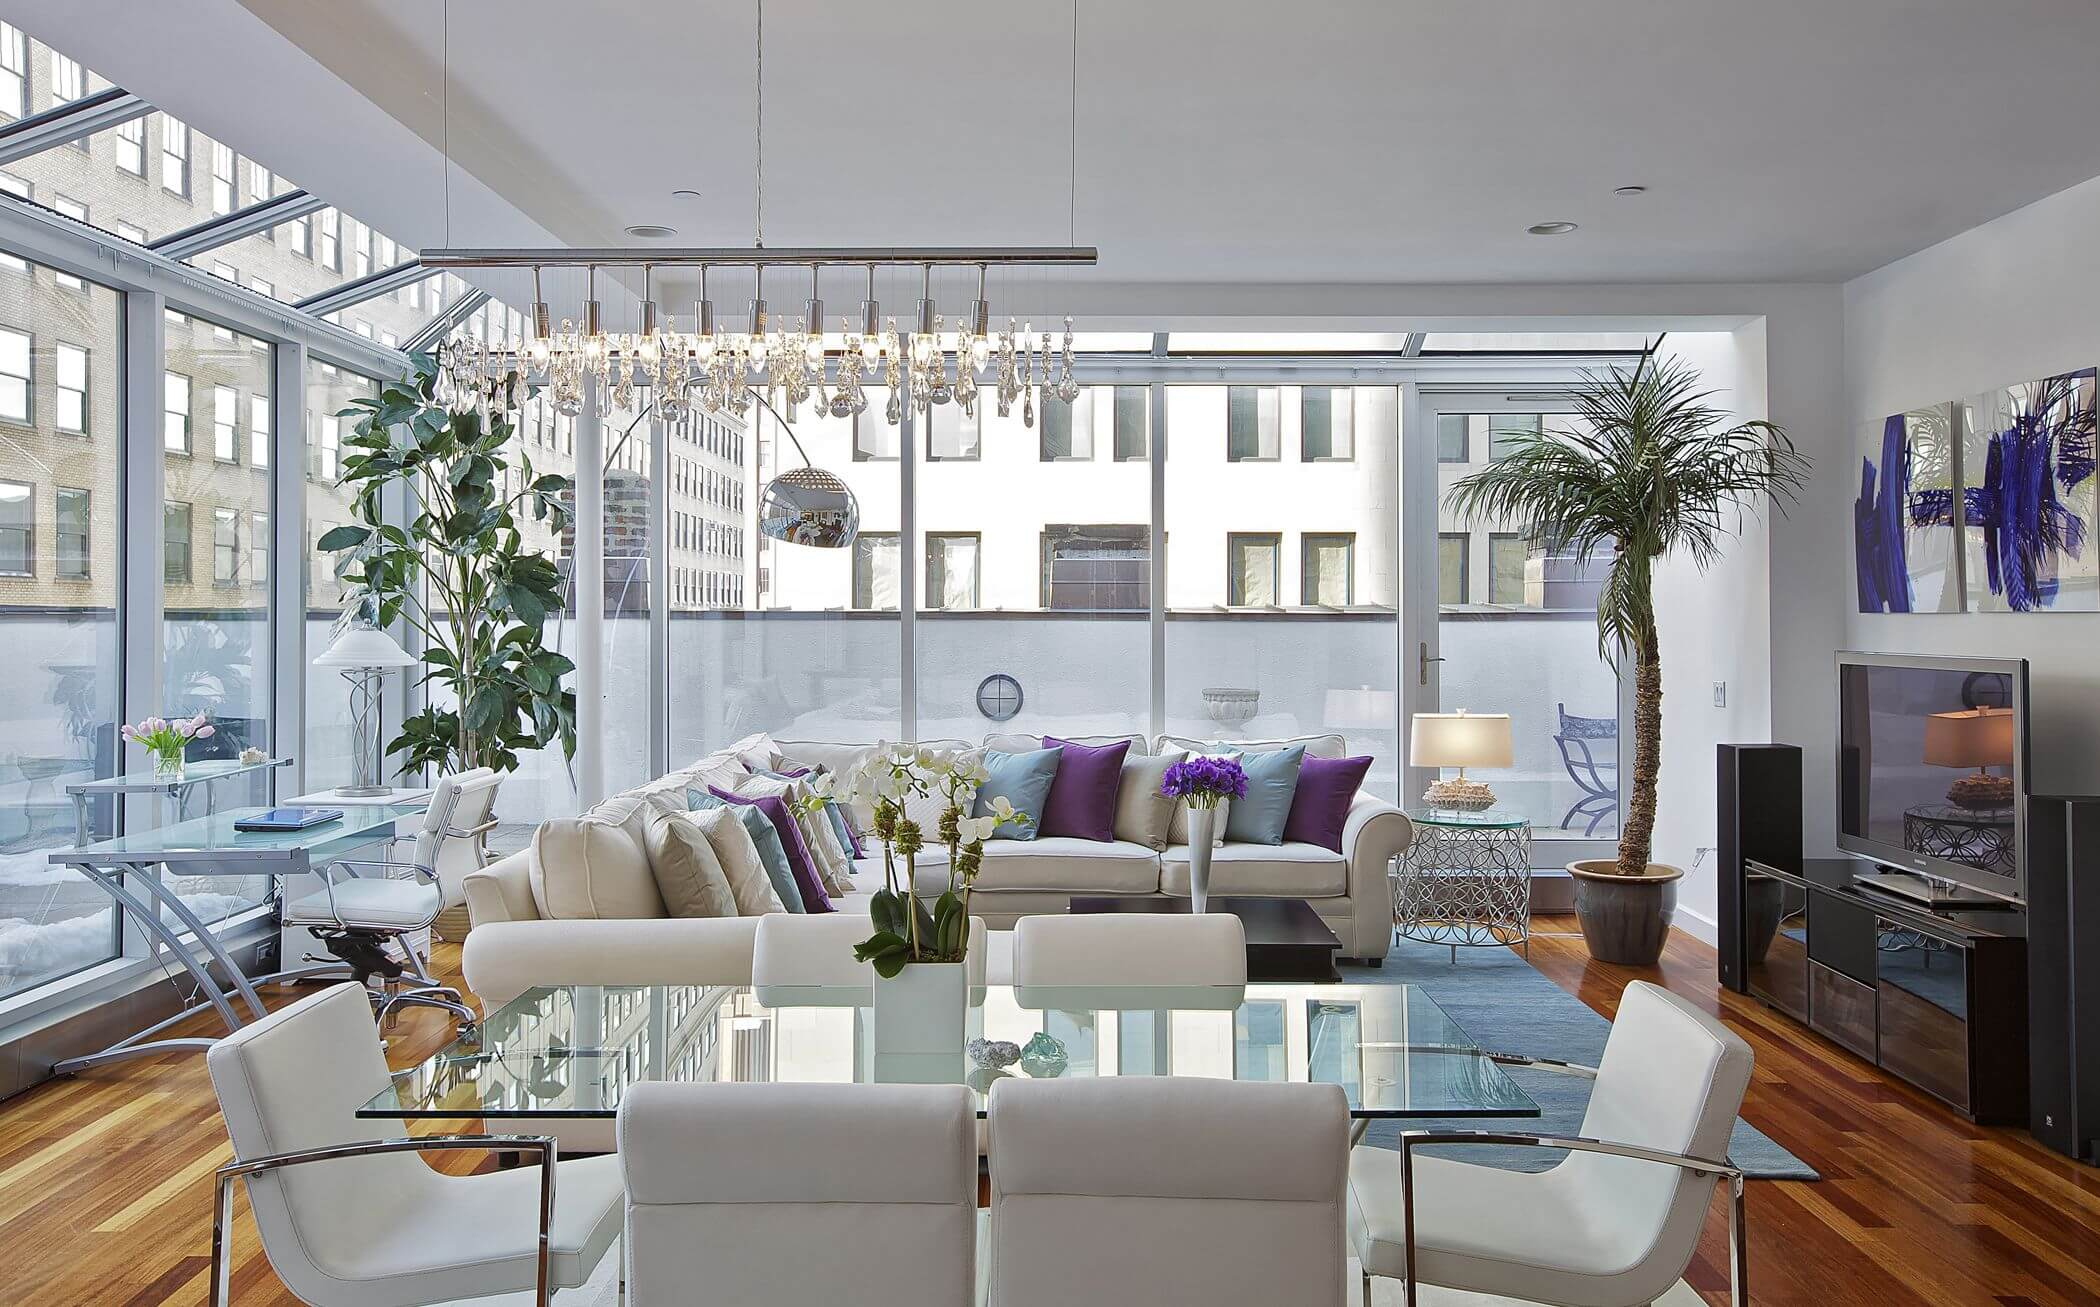 45 Contemporary Living Rooms With Sectional Sofas Pictures intended for 15 Clever Ways How to Make Dining And Living Room Sets